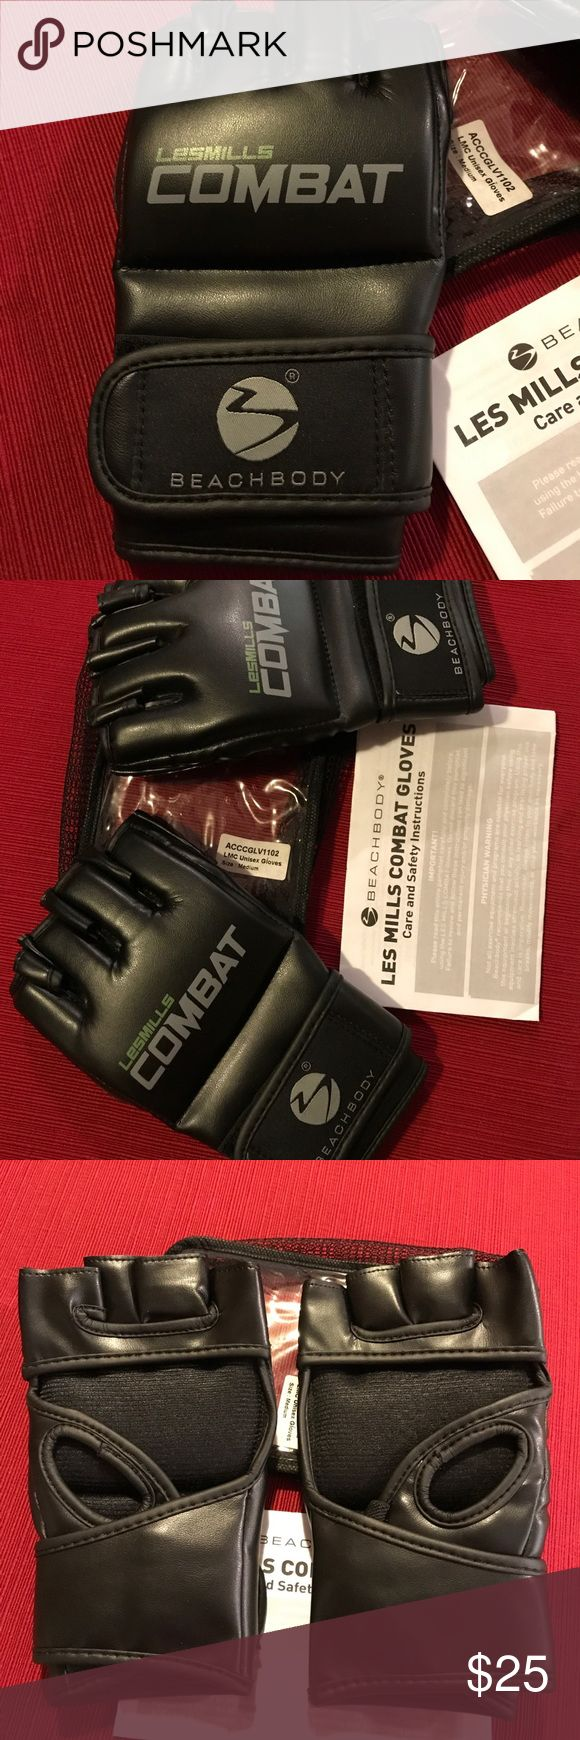 Les Mills Combat Gloves Les Mills Combat Gloves. New in storage bag. Care and safety instructions included. Size is medium Les Mills Combat Gloves Accessories Gloves & Mittens